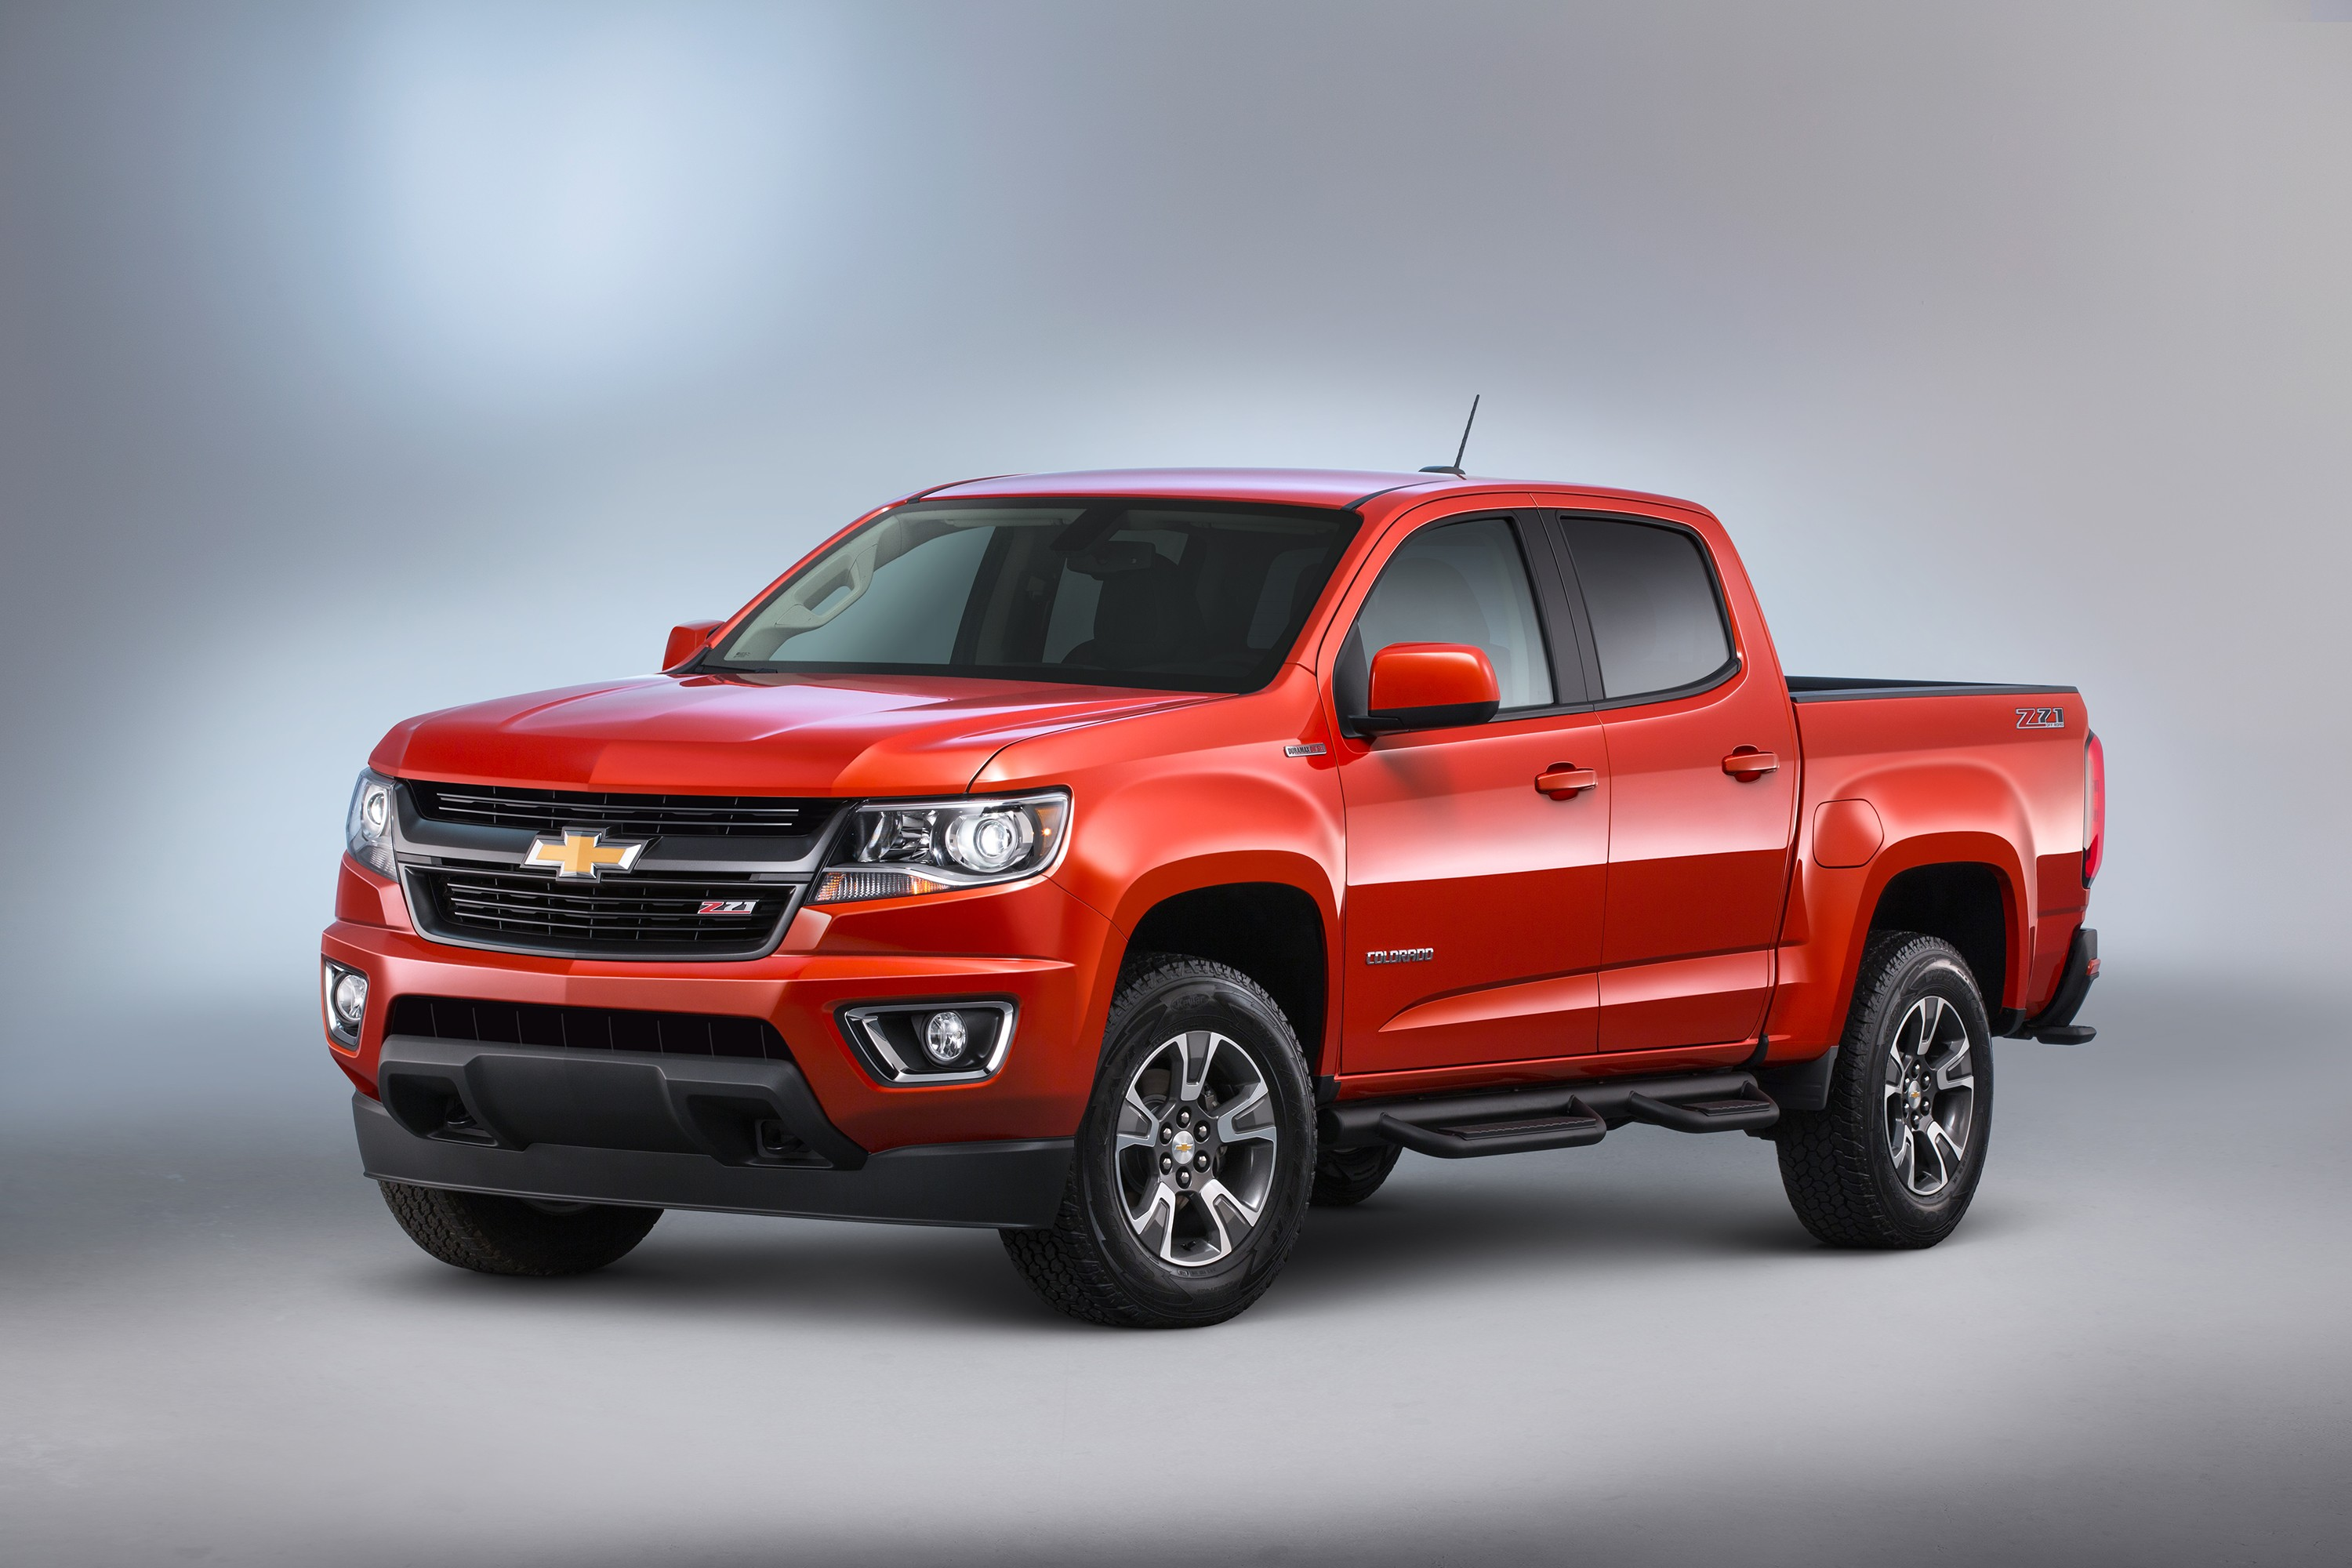 2016 chevrolet colorado rewarded with 2 8 liter diesel mill towing capacity rises to 7 700 lbs. Black Bedroom Furniture Sets. Home Design Ideas